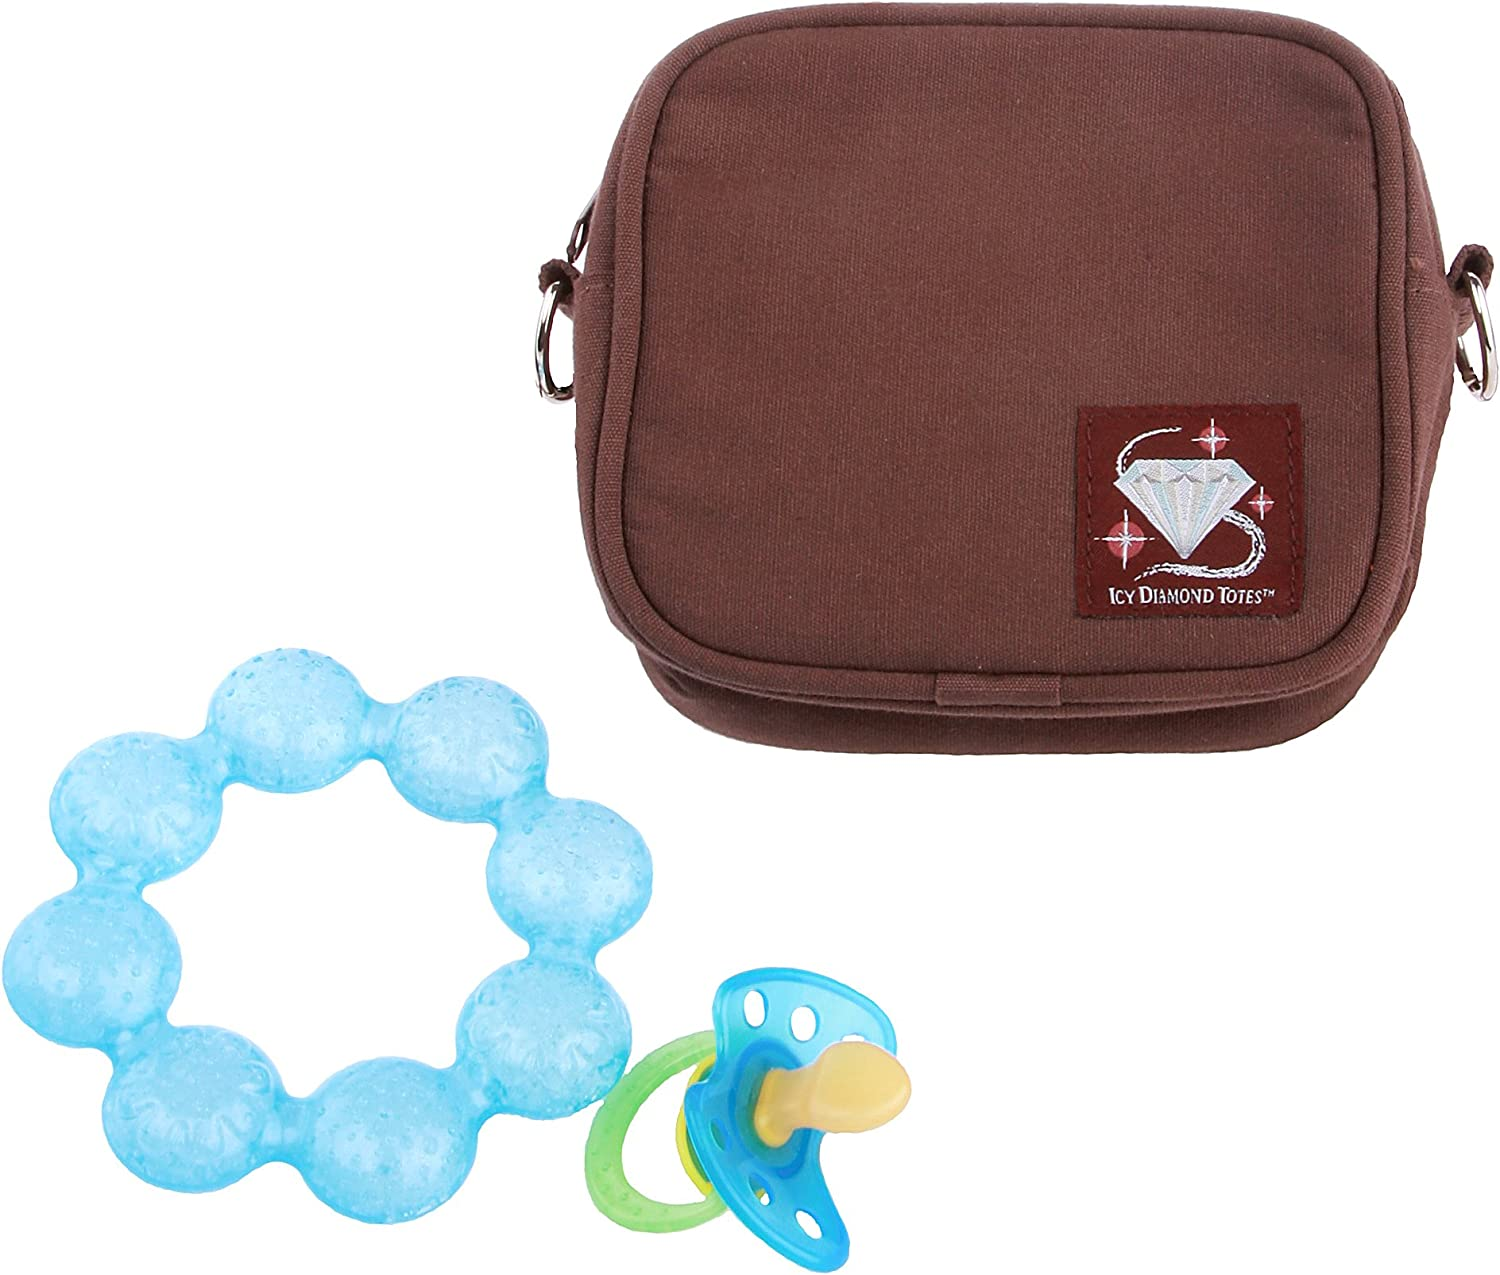 teethers for insulin snacks Icy Diamond Tote Small Insulated Tote Bag Brown